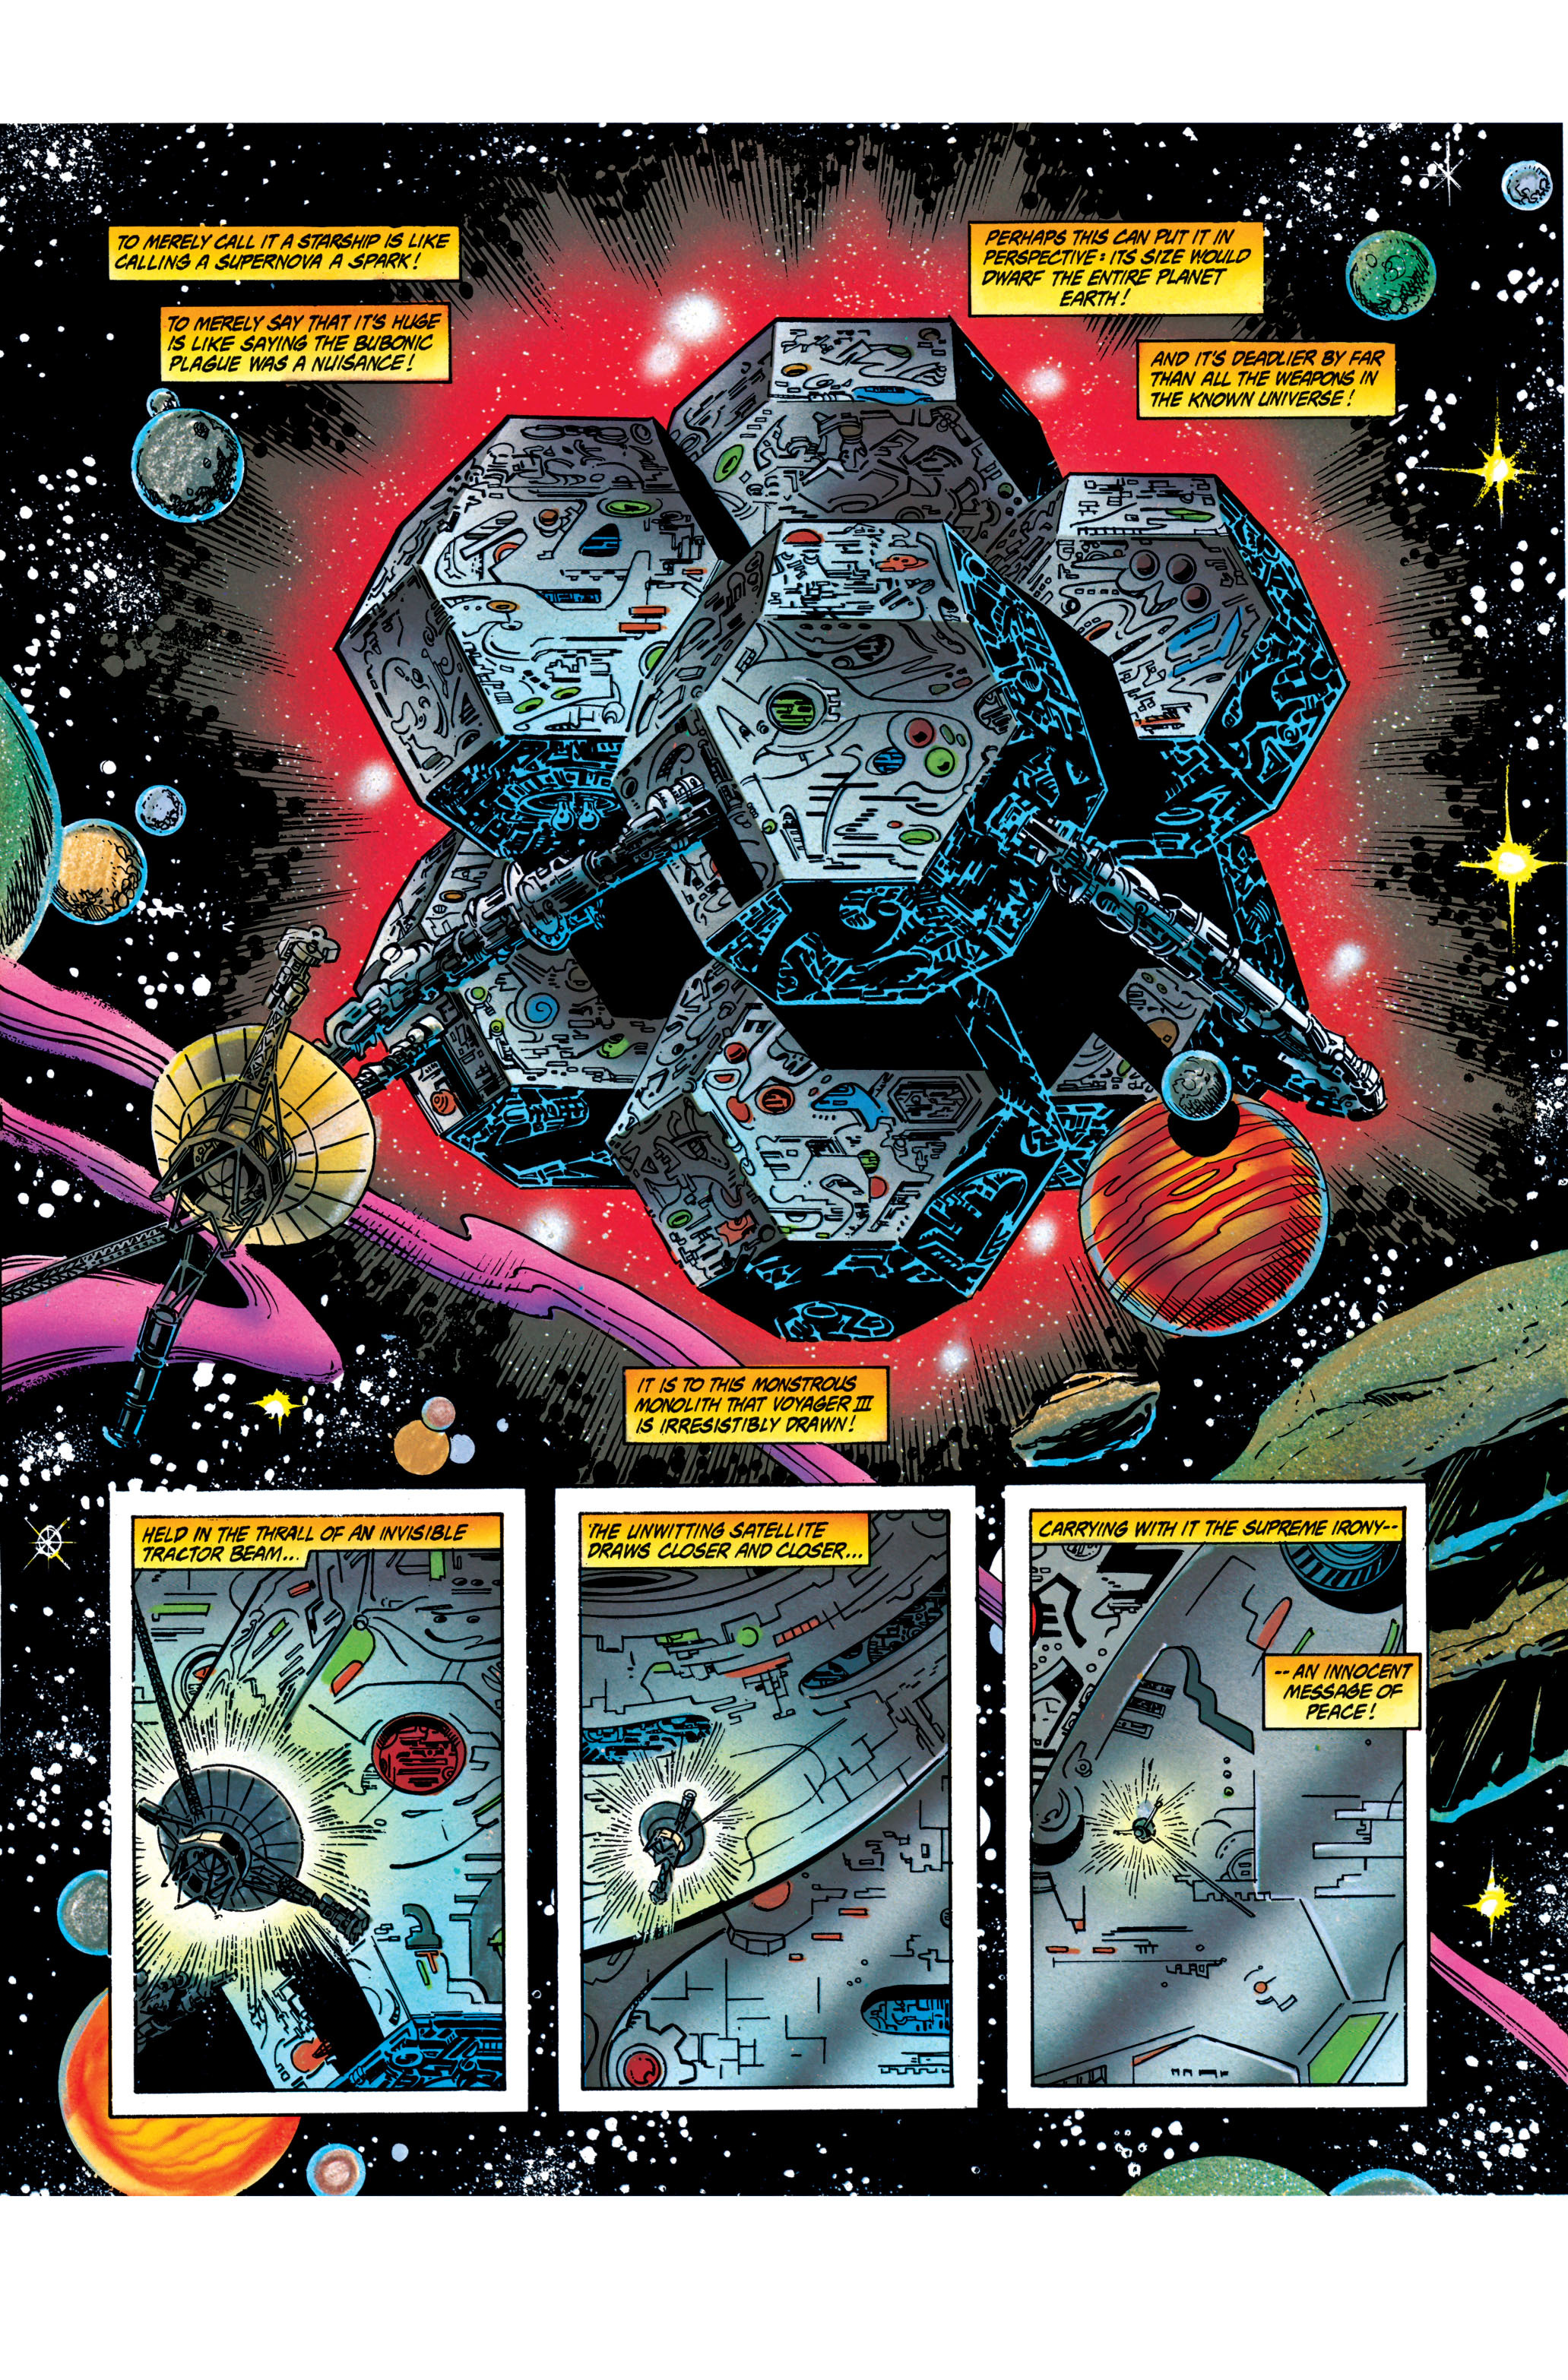 Read online Silver Surfer: Parable comic -  Issue # TPB - 64